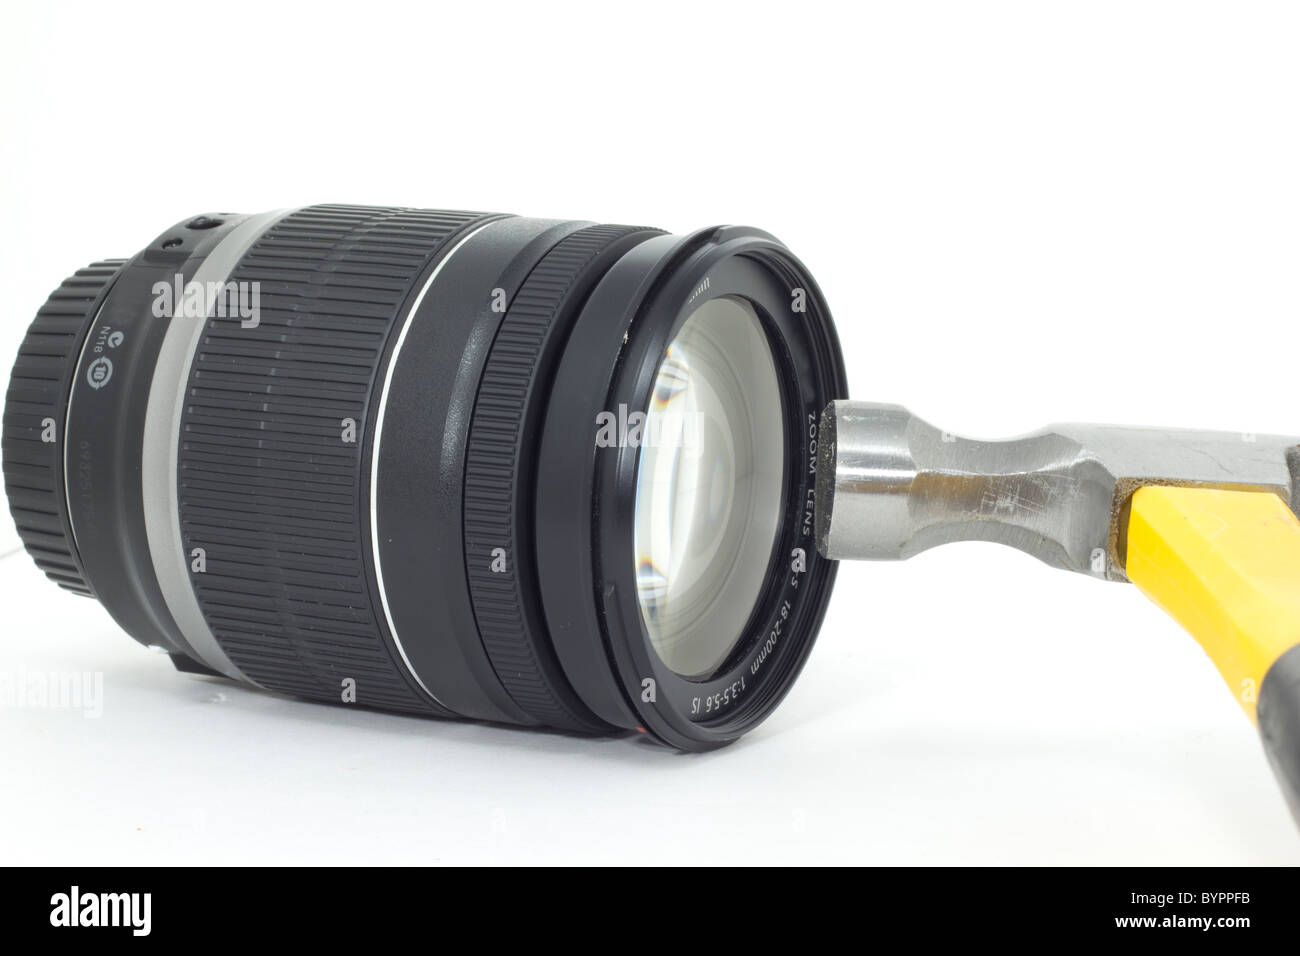 A hammer about to smash a delicate expensive camera lens - Stock Image